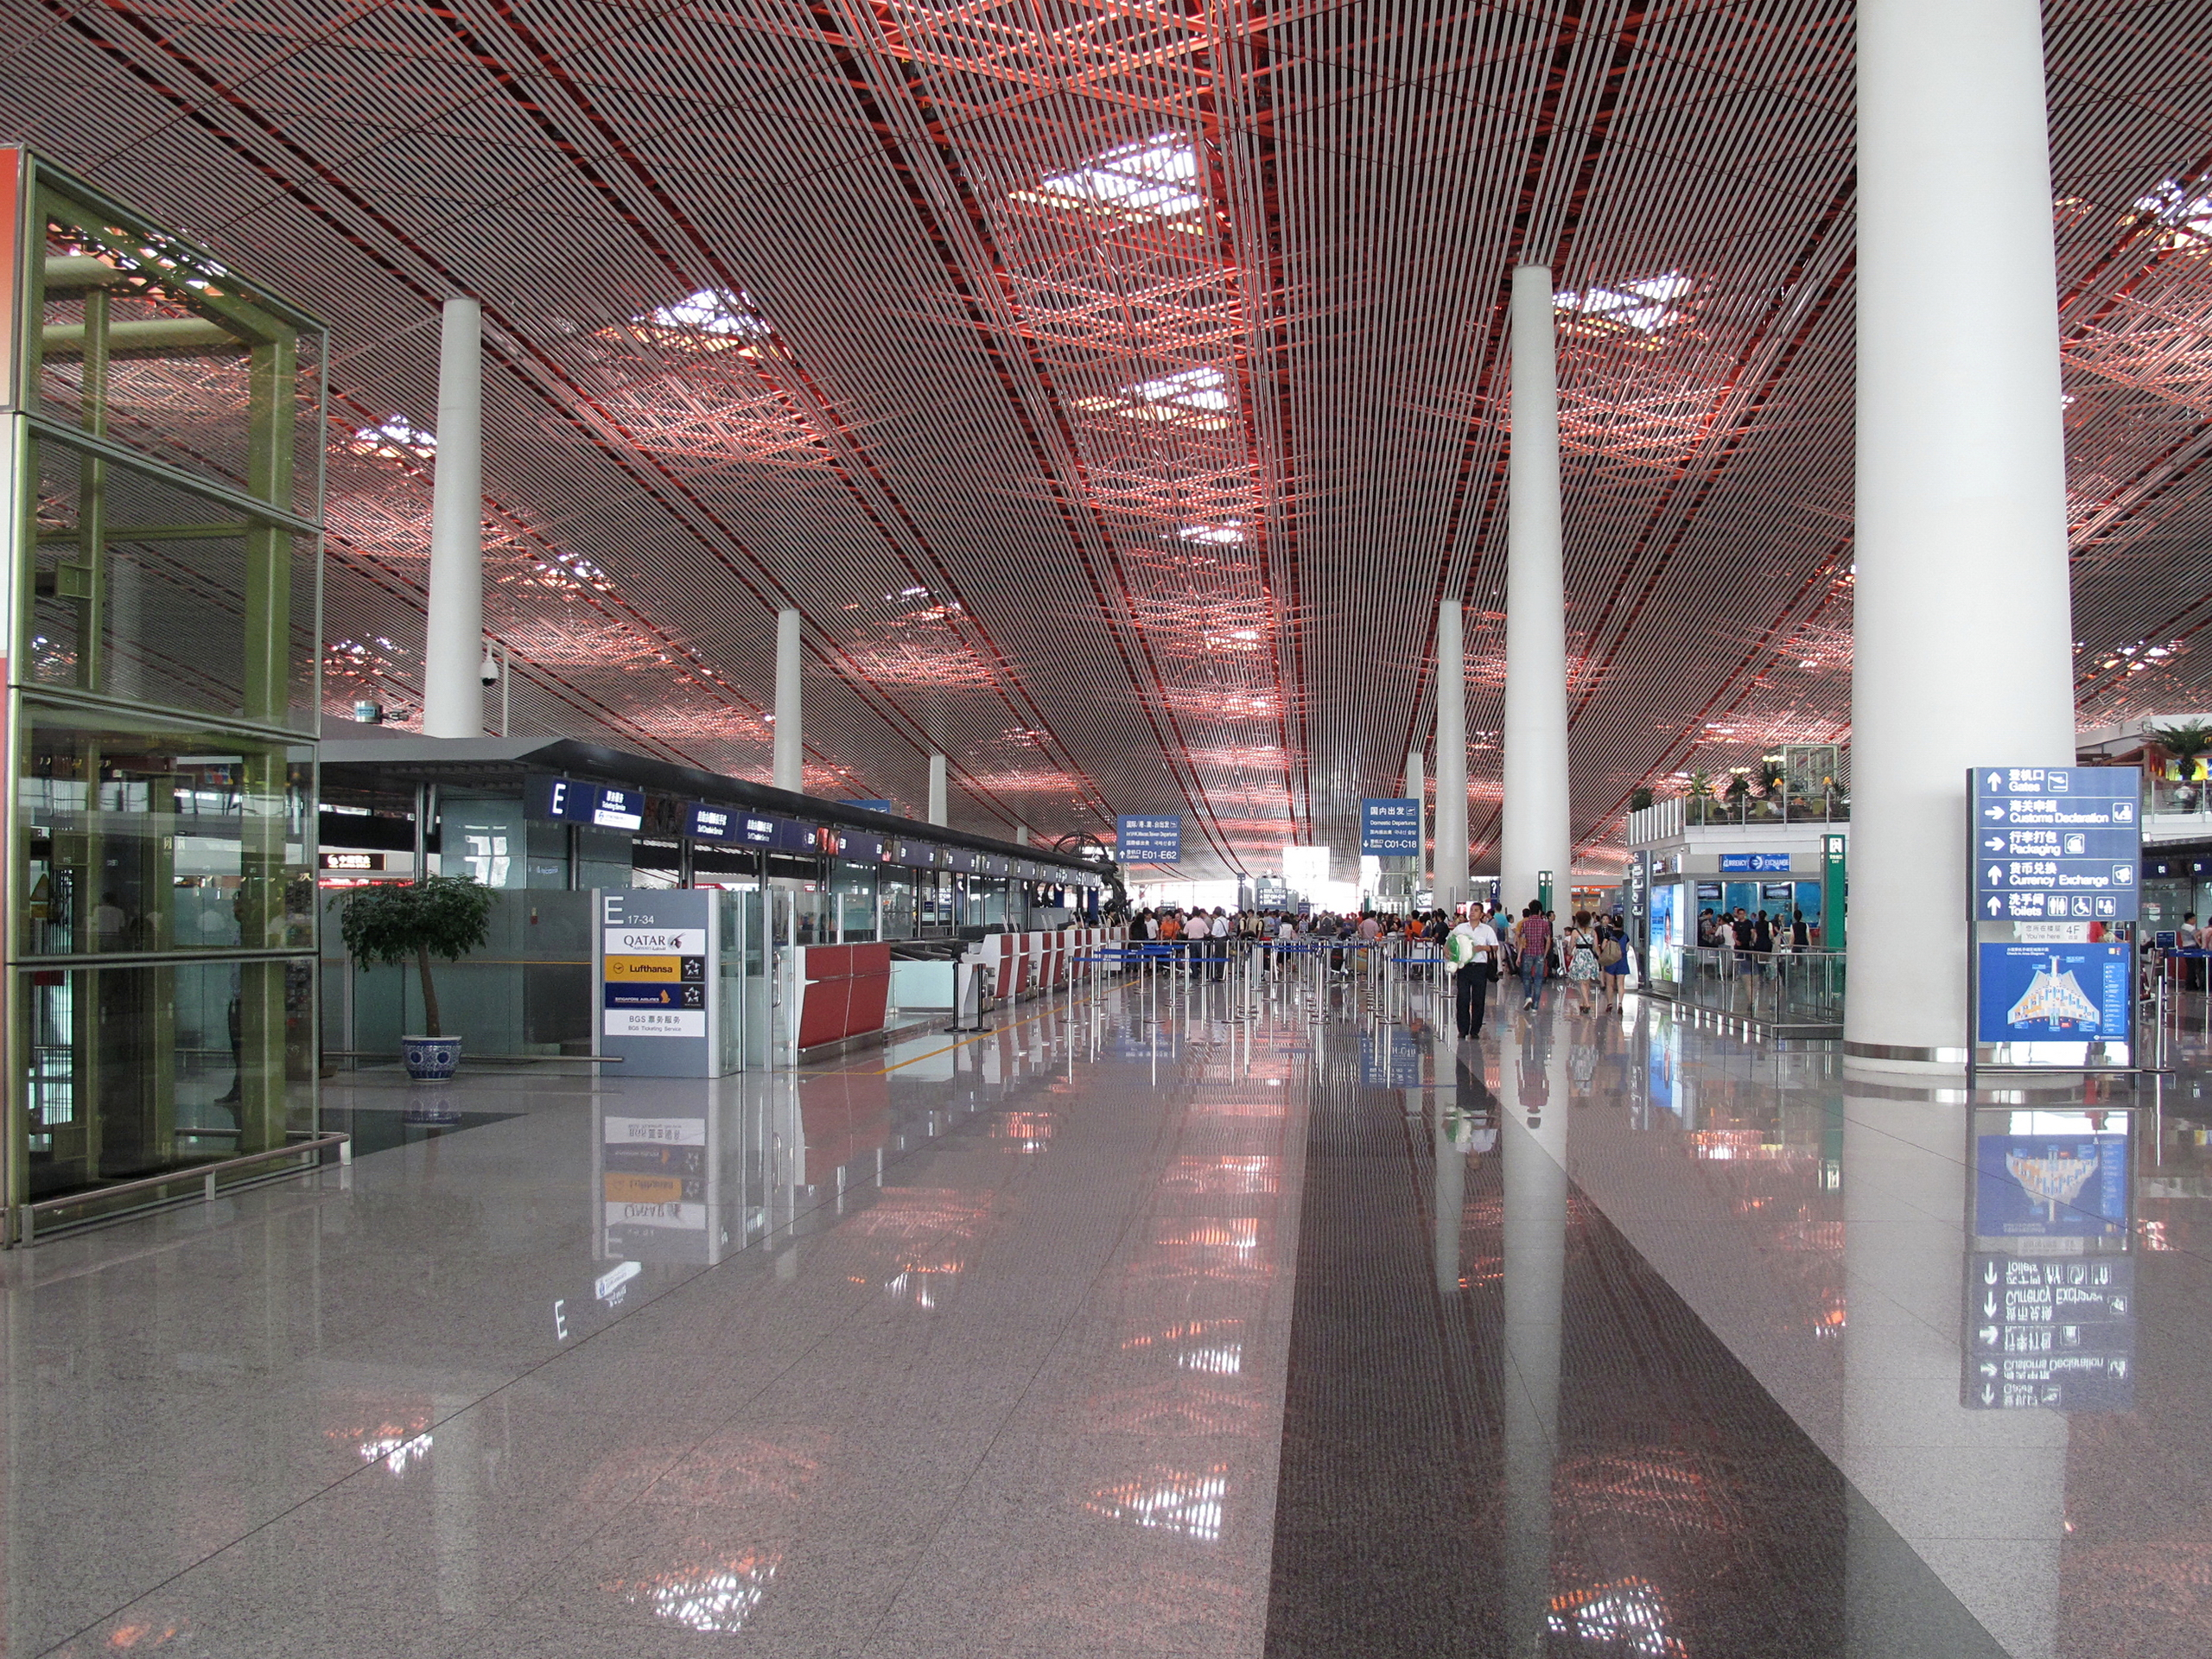 beijing capital international airport d world s th best by beijing still the world 039 s second busiest airport chinese travelers love